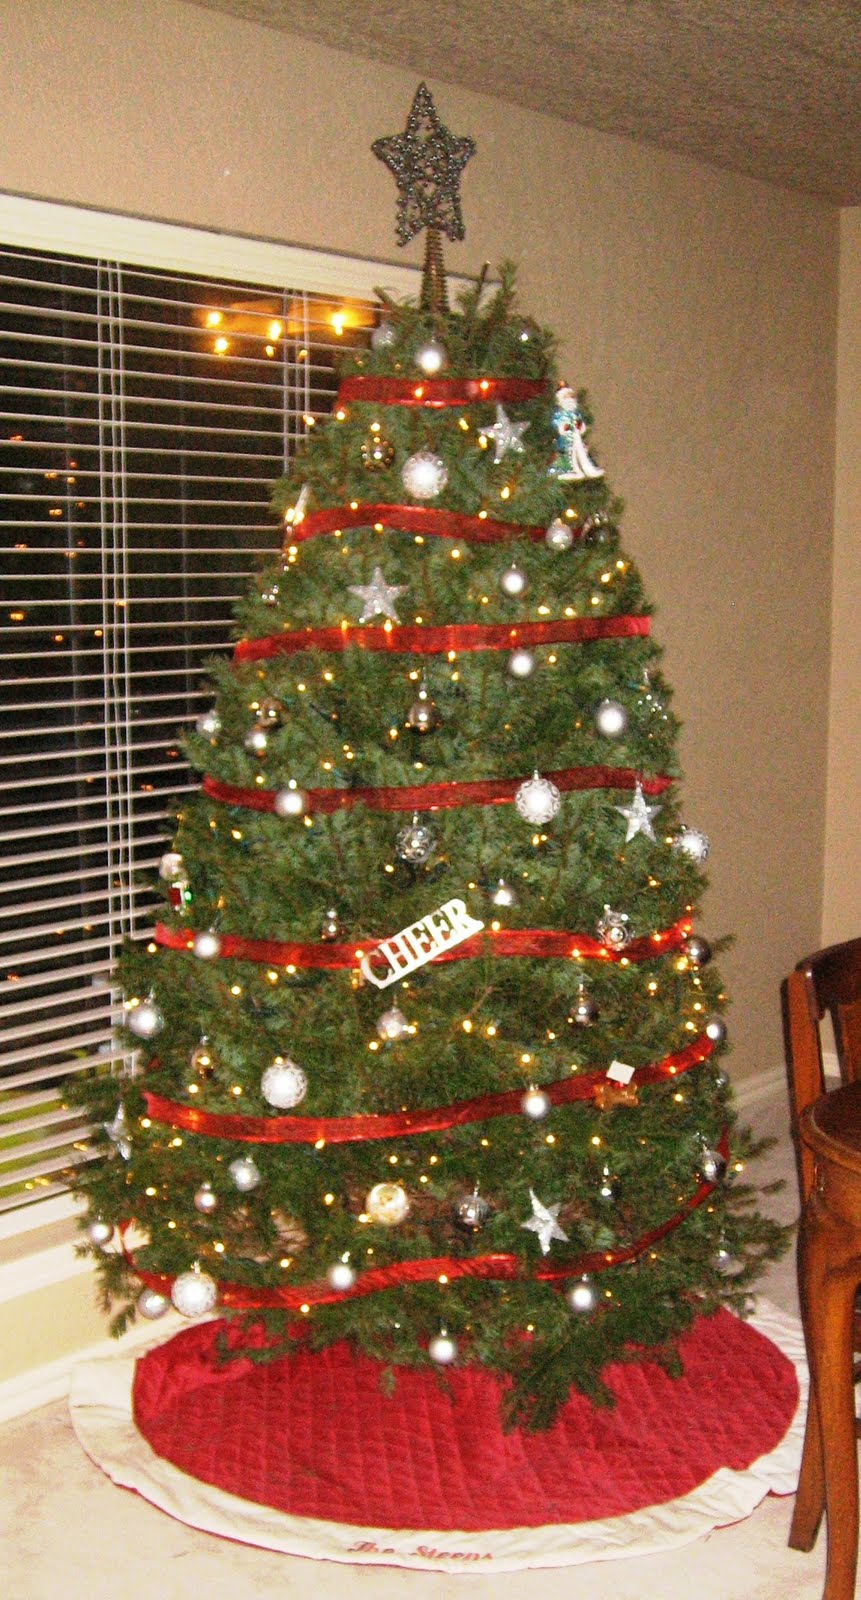 here is our second treethe real one it is so fun to have a real tree in our house this year i love the smell and i am very hopeful that next christmas - Christmas Tree Smell